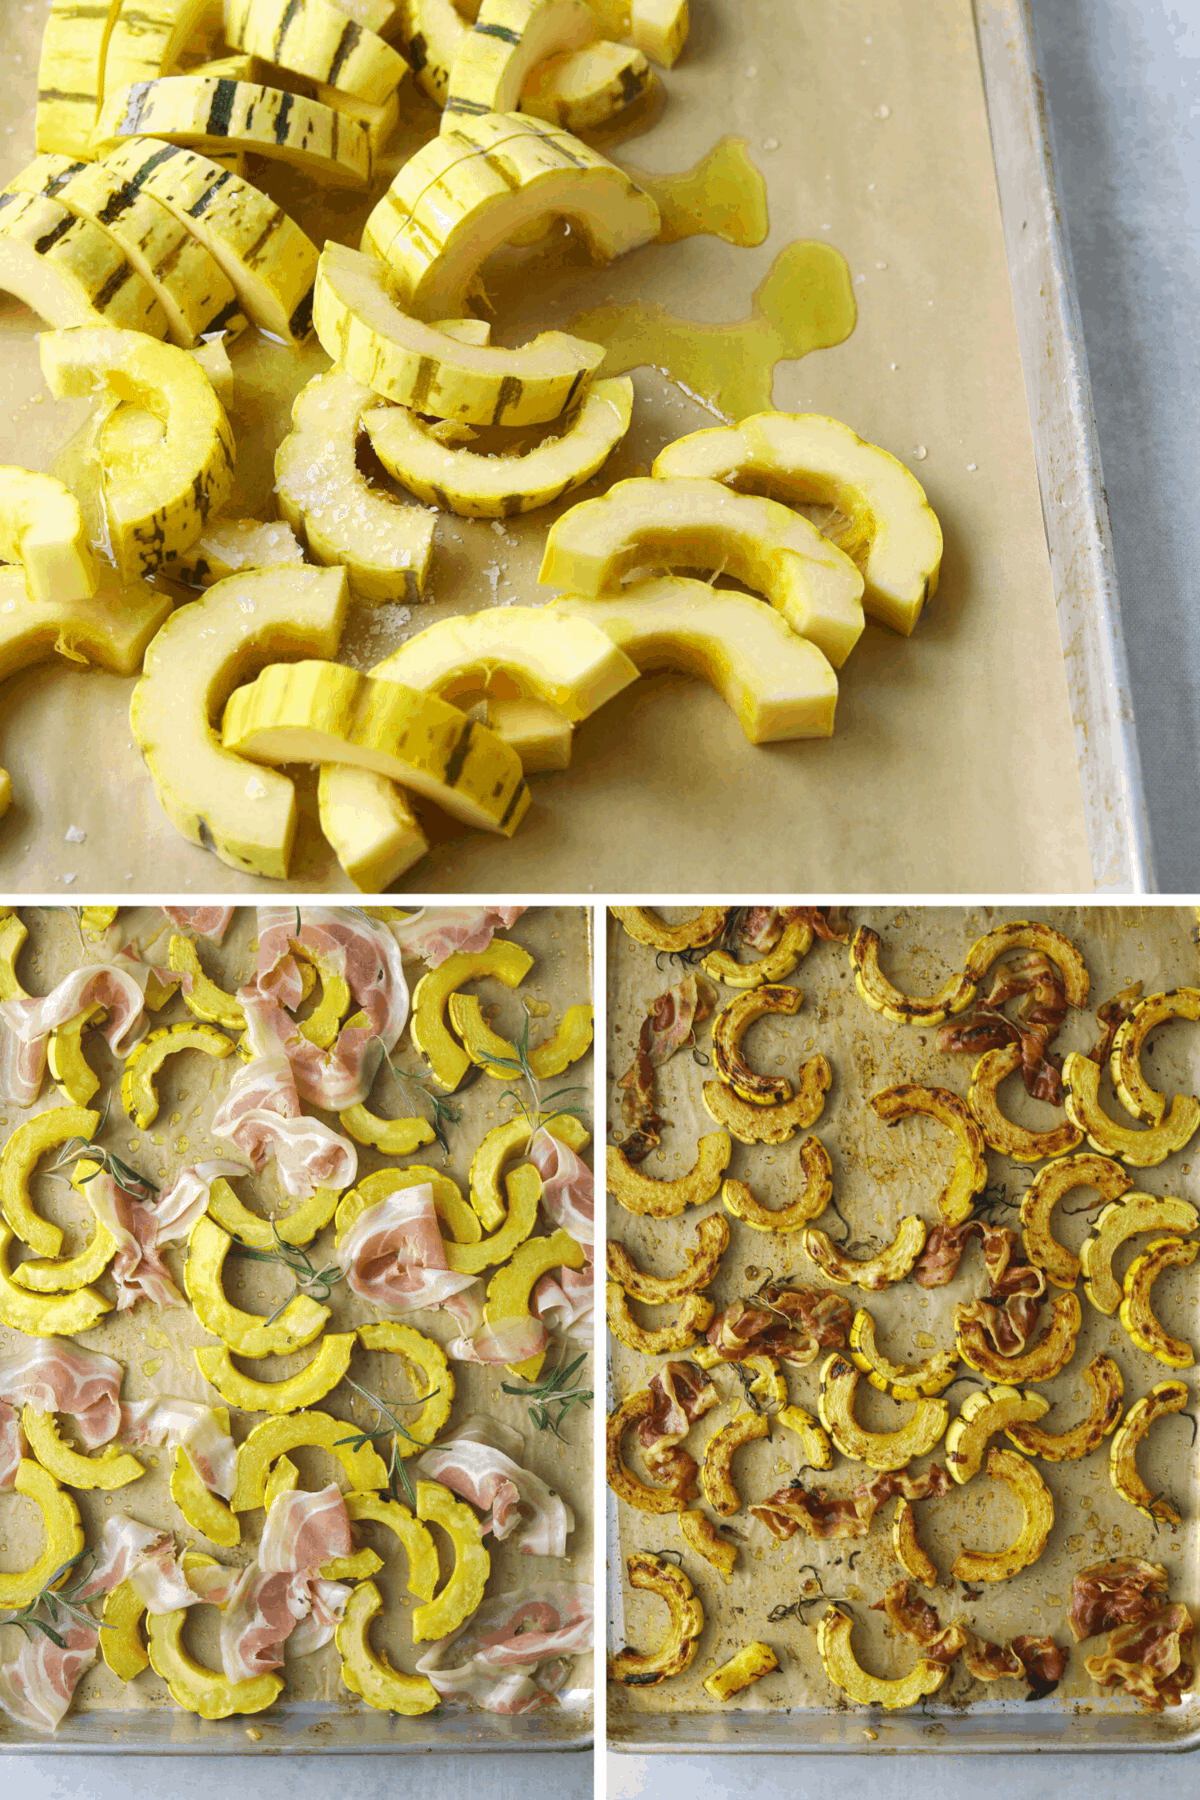 delicata squash and pancetta roasting on a baking tray